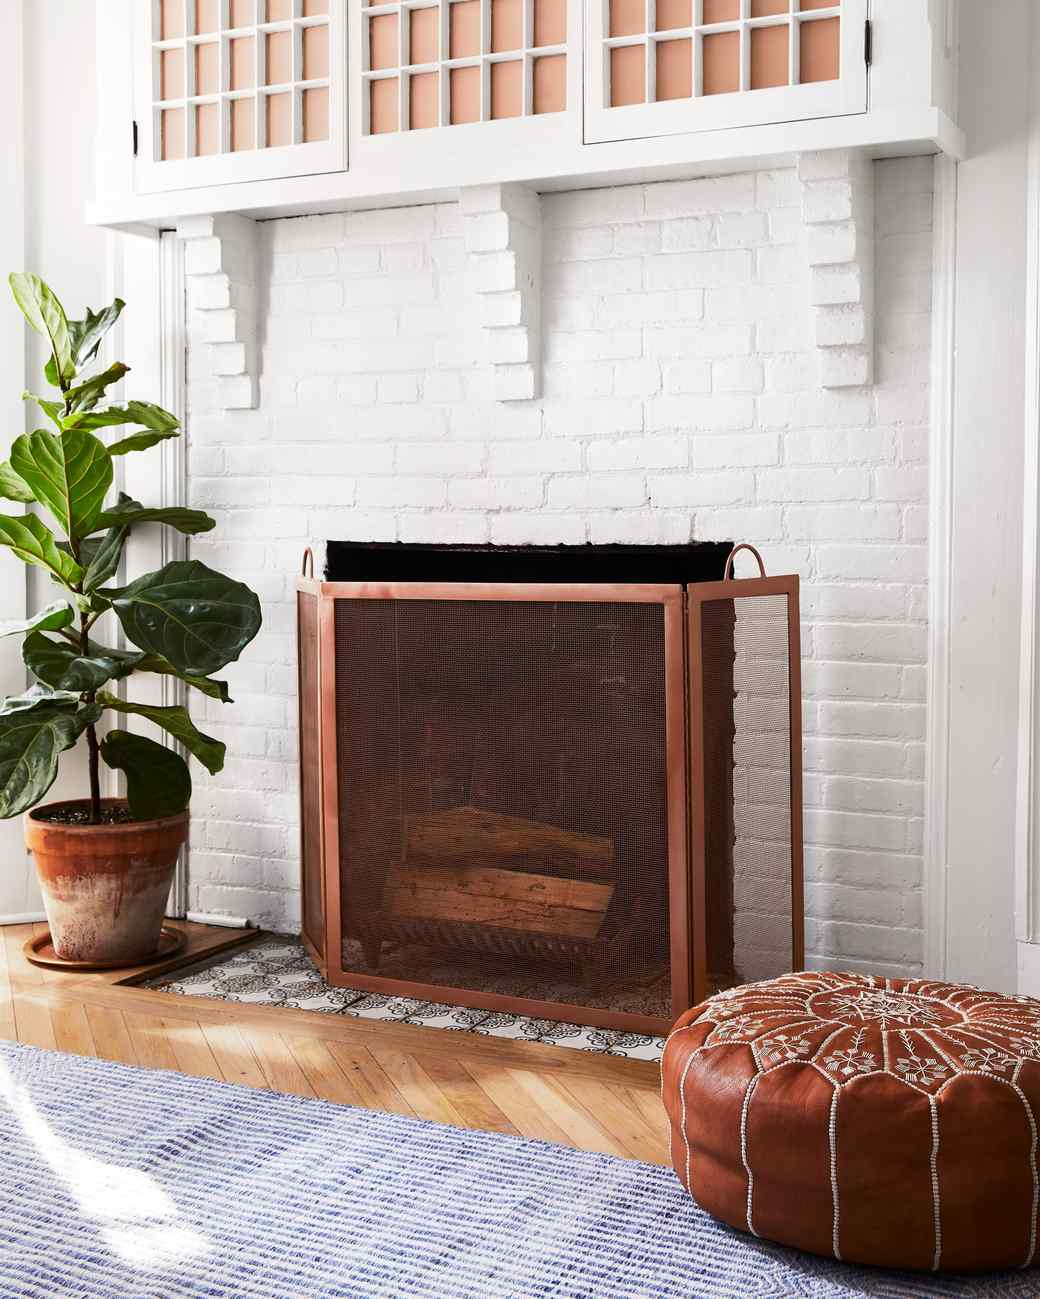 Hearth Covers: Spray-Painted Metal Fire Screen